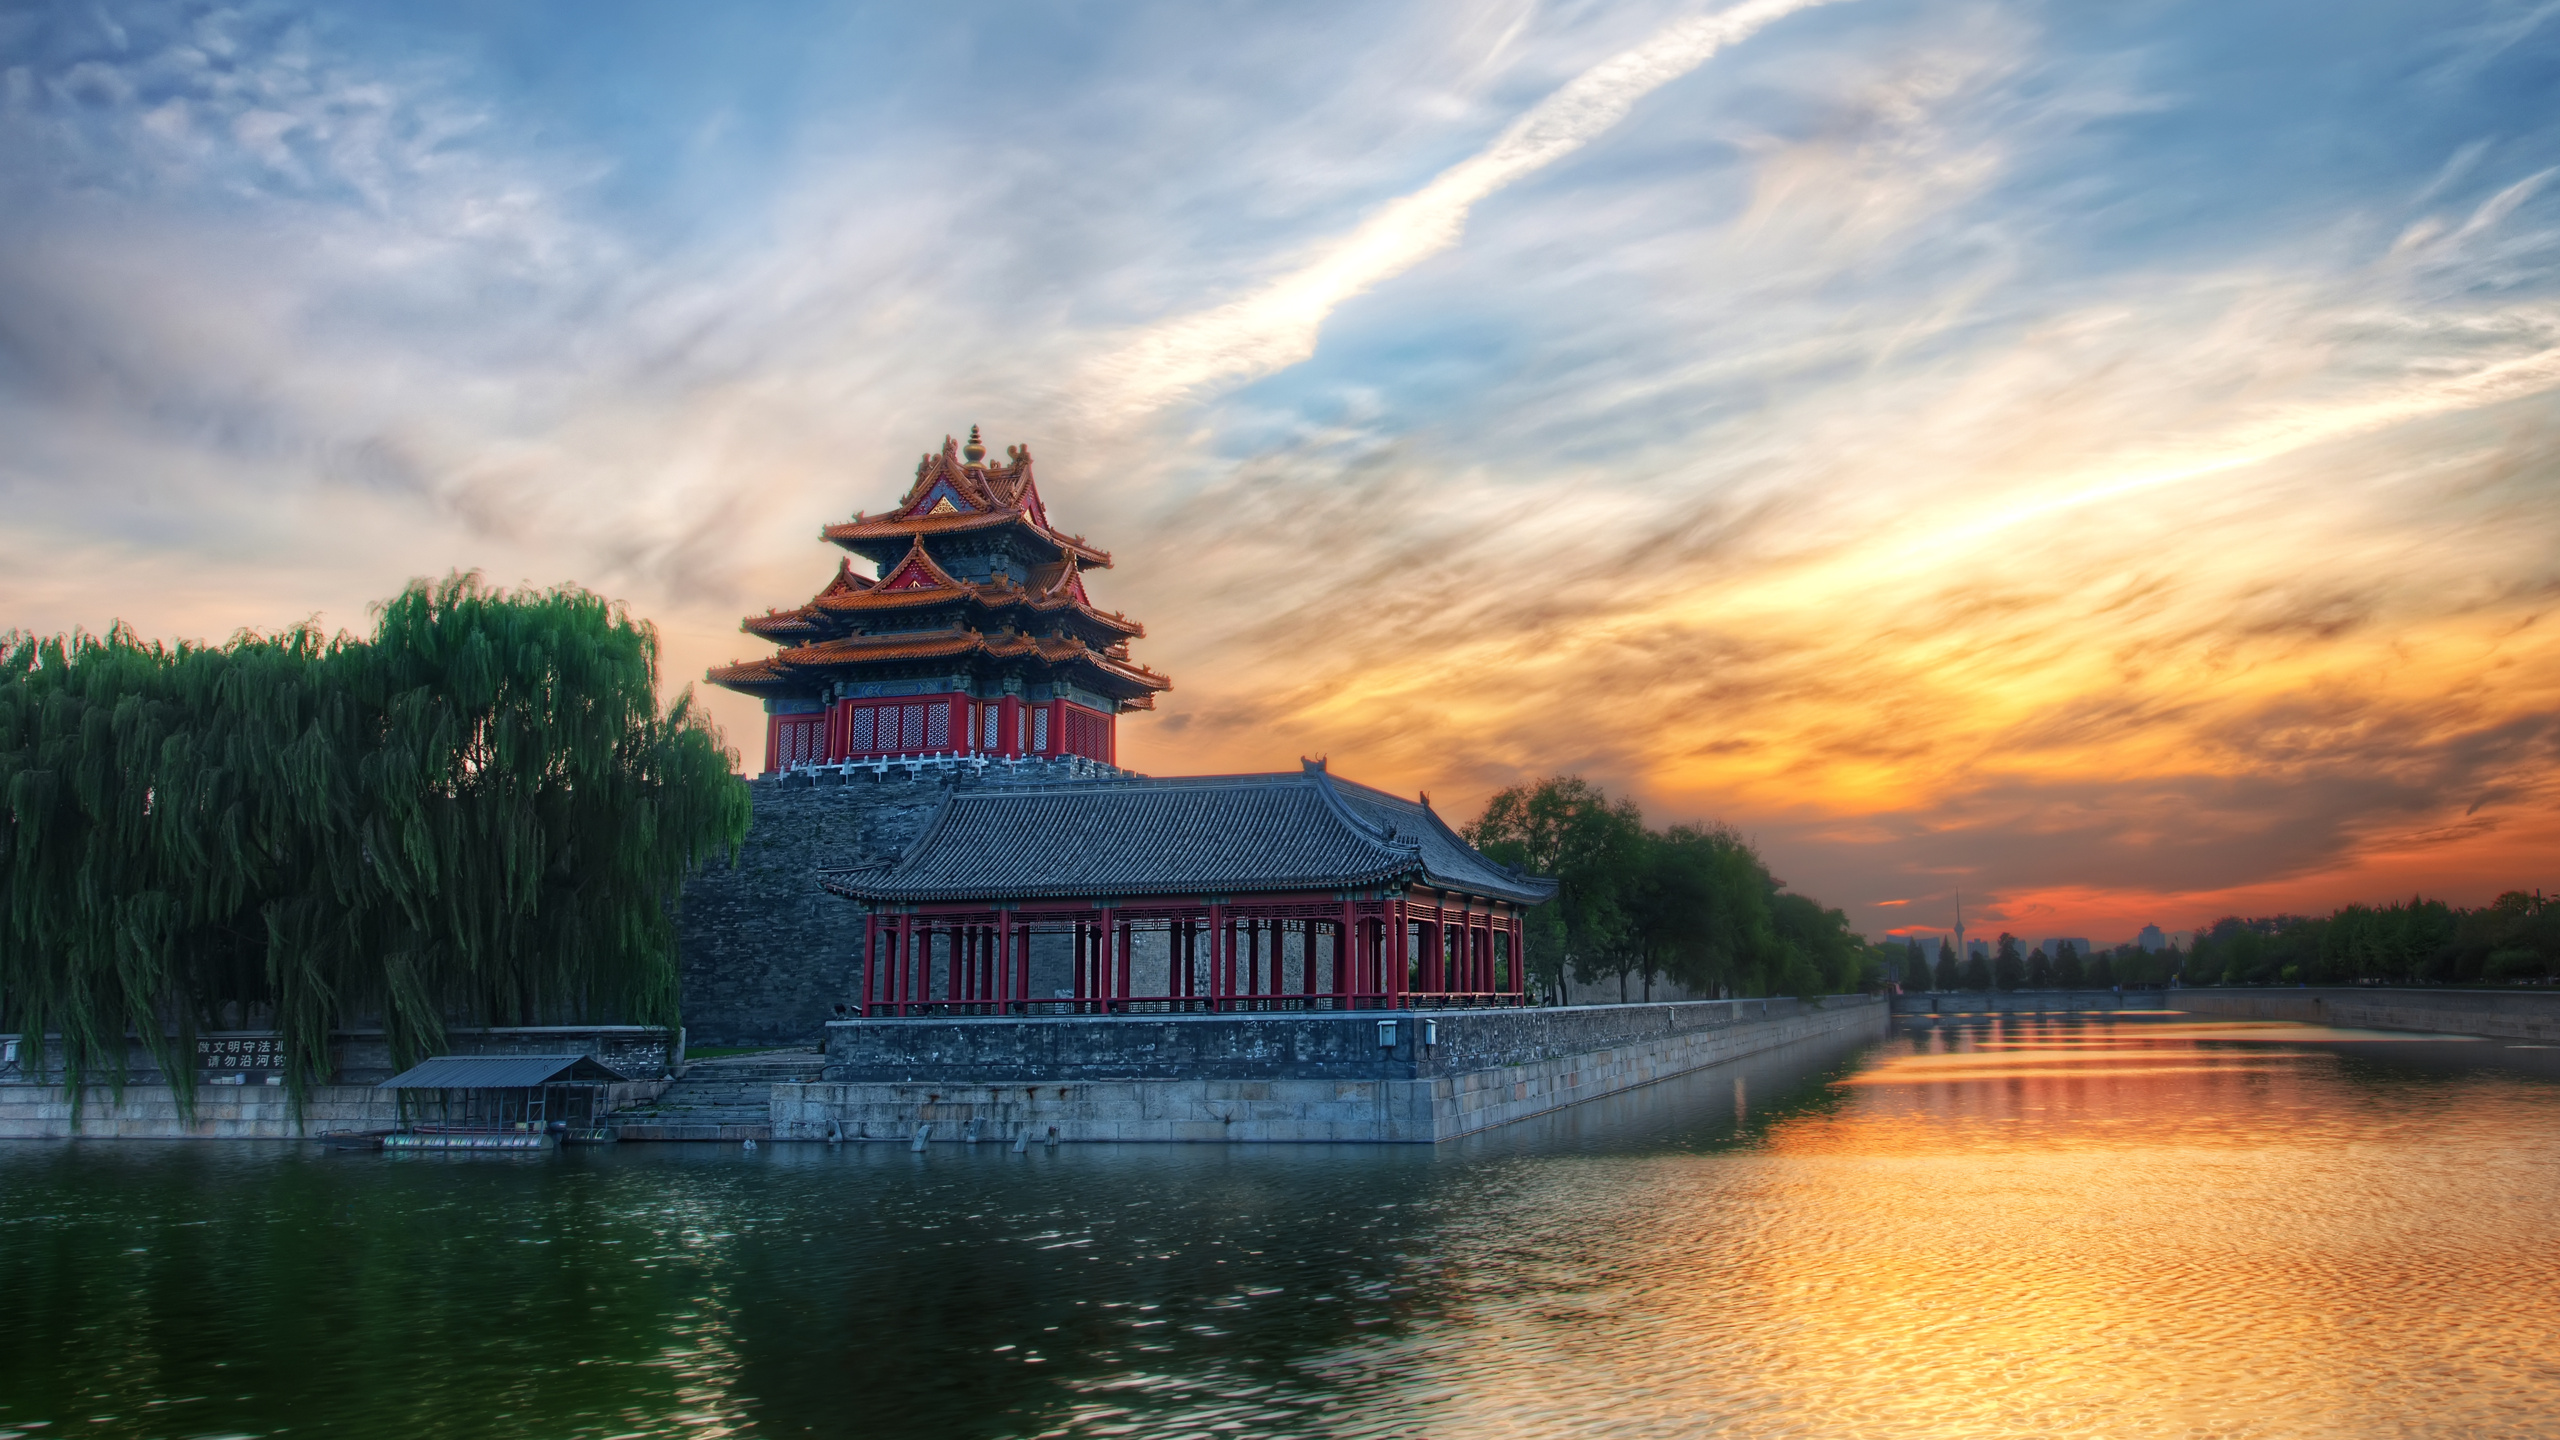 quality china wallpapers countries - photo #23